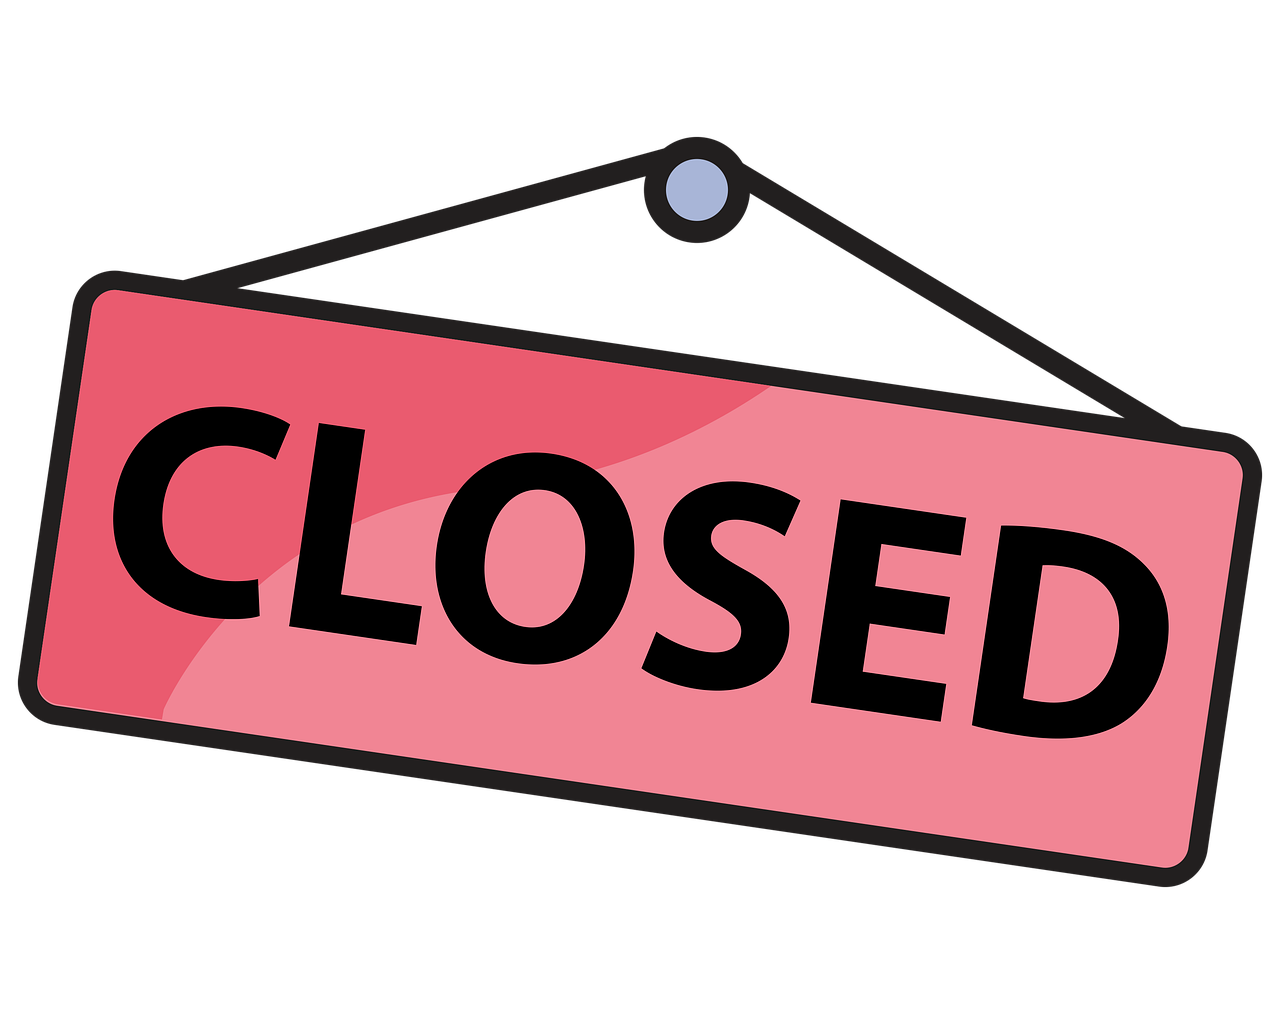 Closed Close Board - Free image on Pixabay